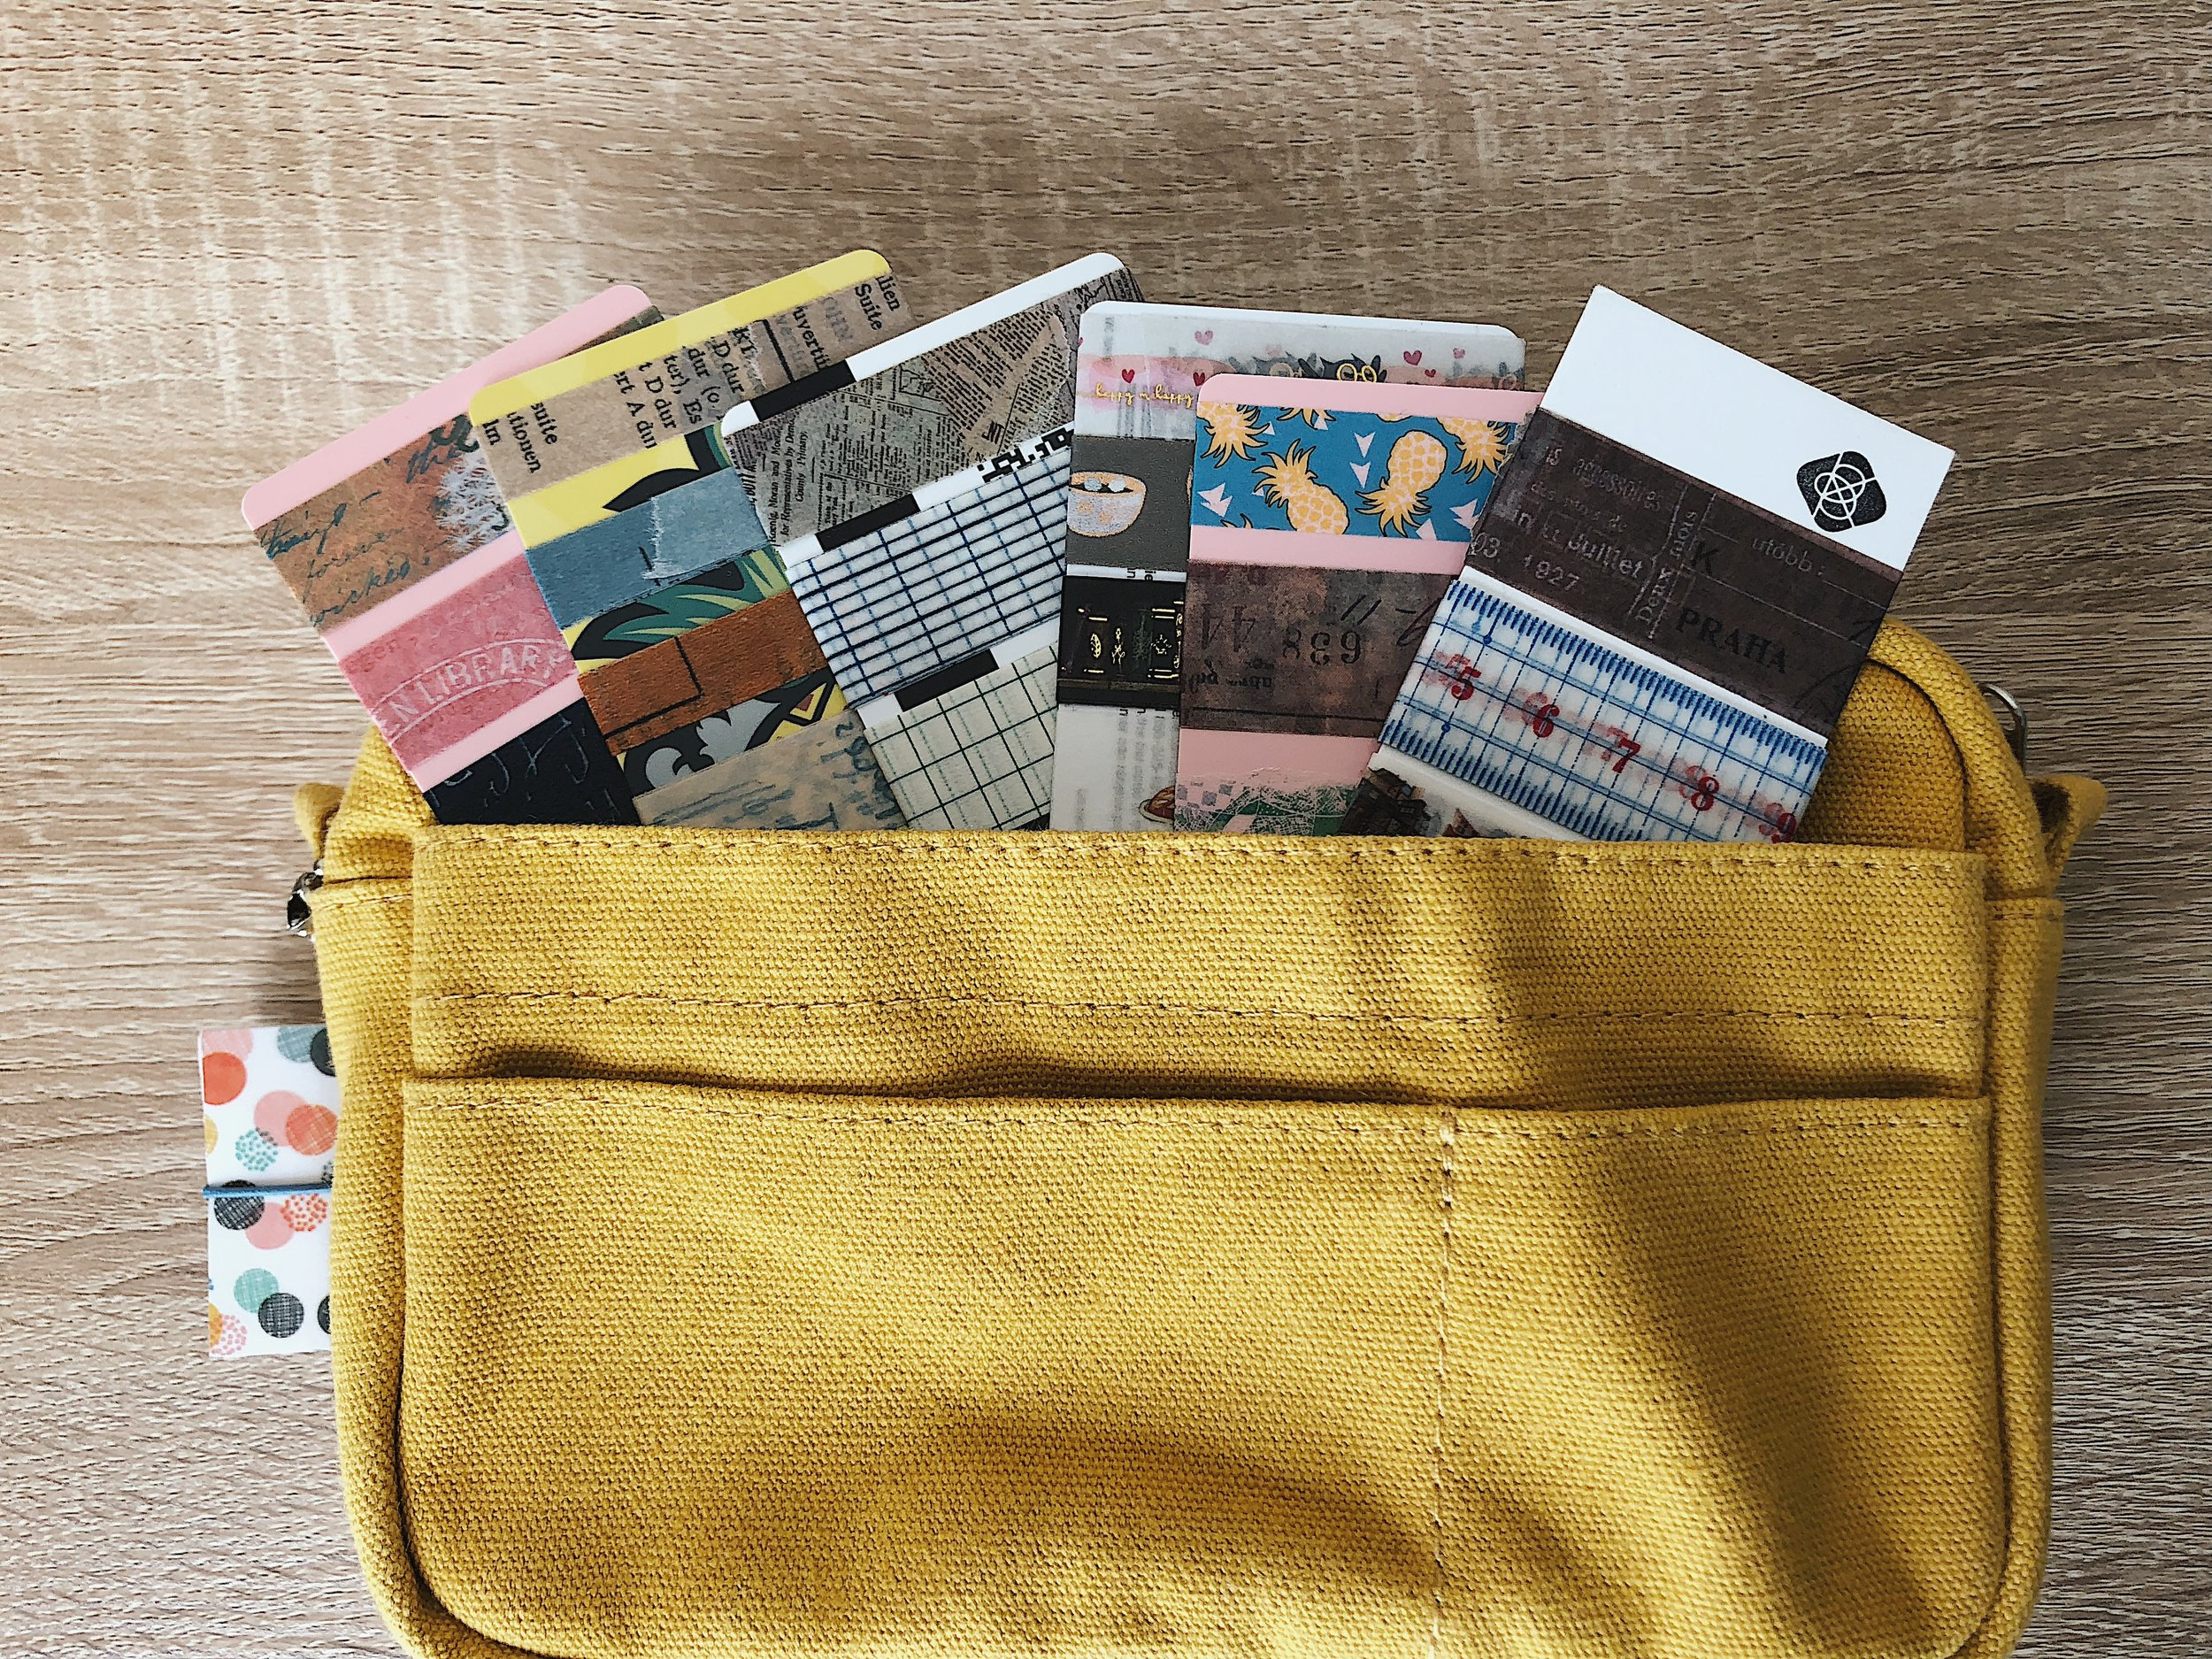 nytravel-pouch3.jpg